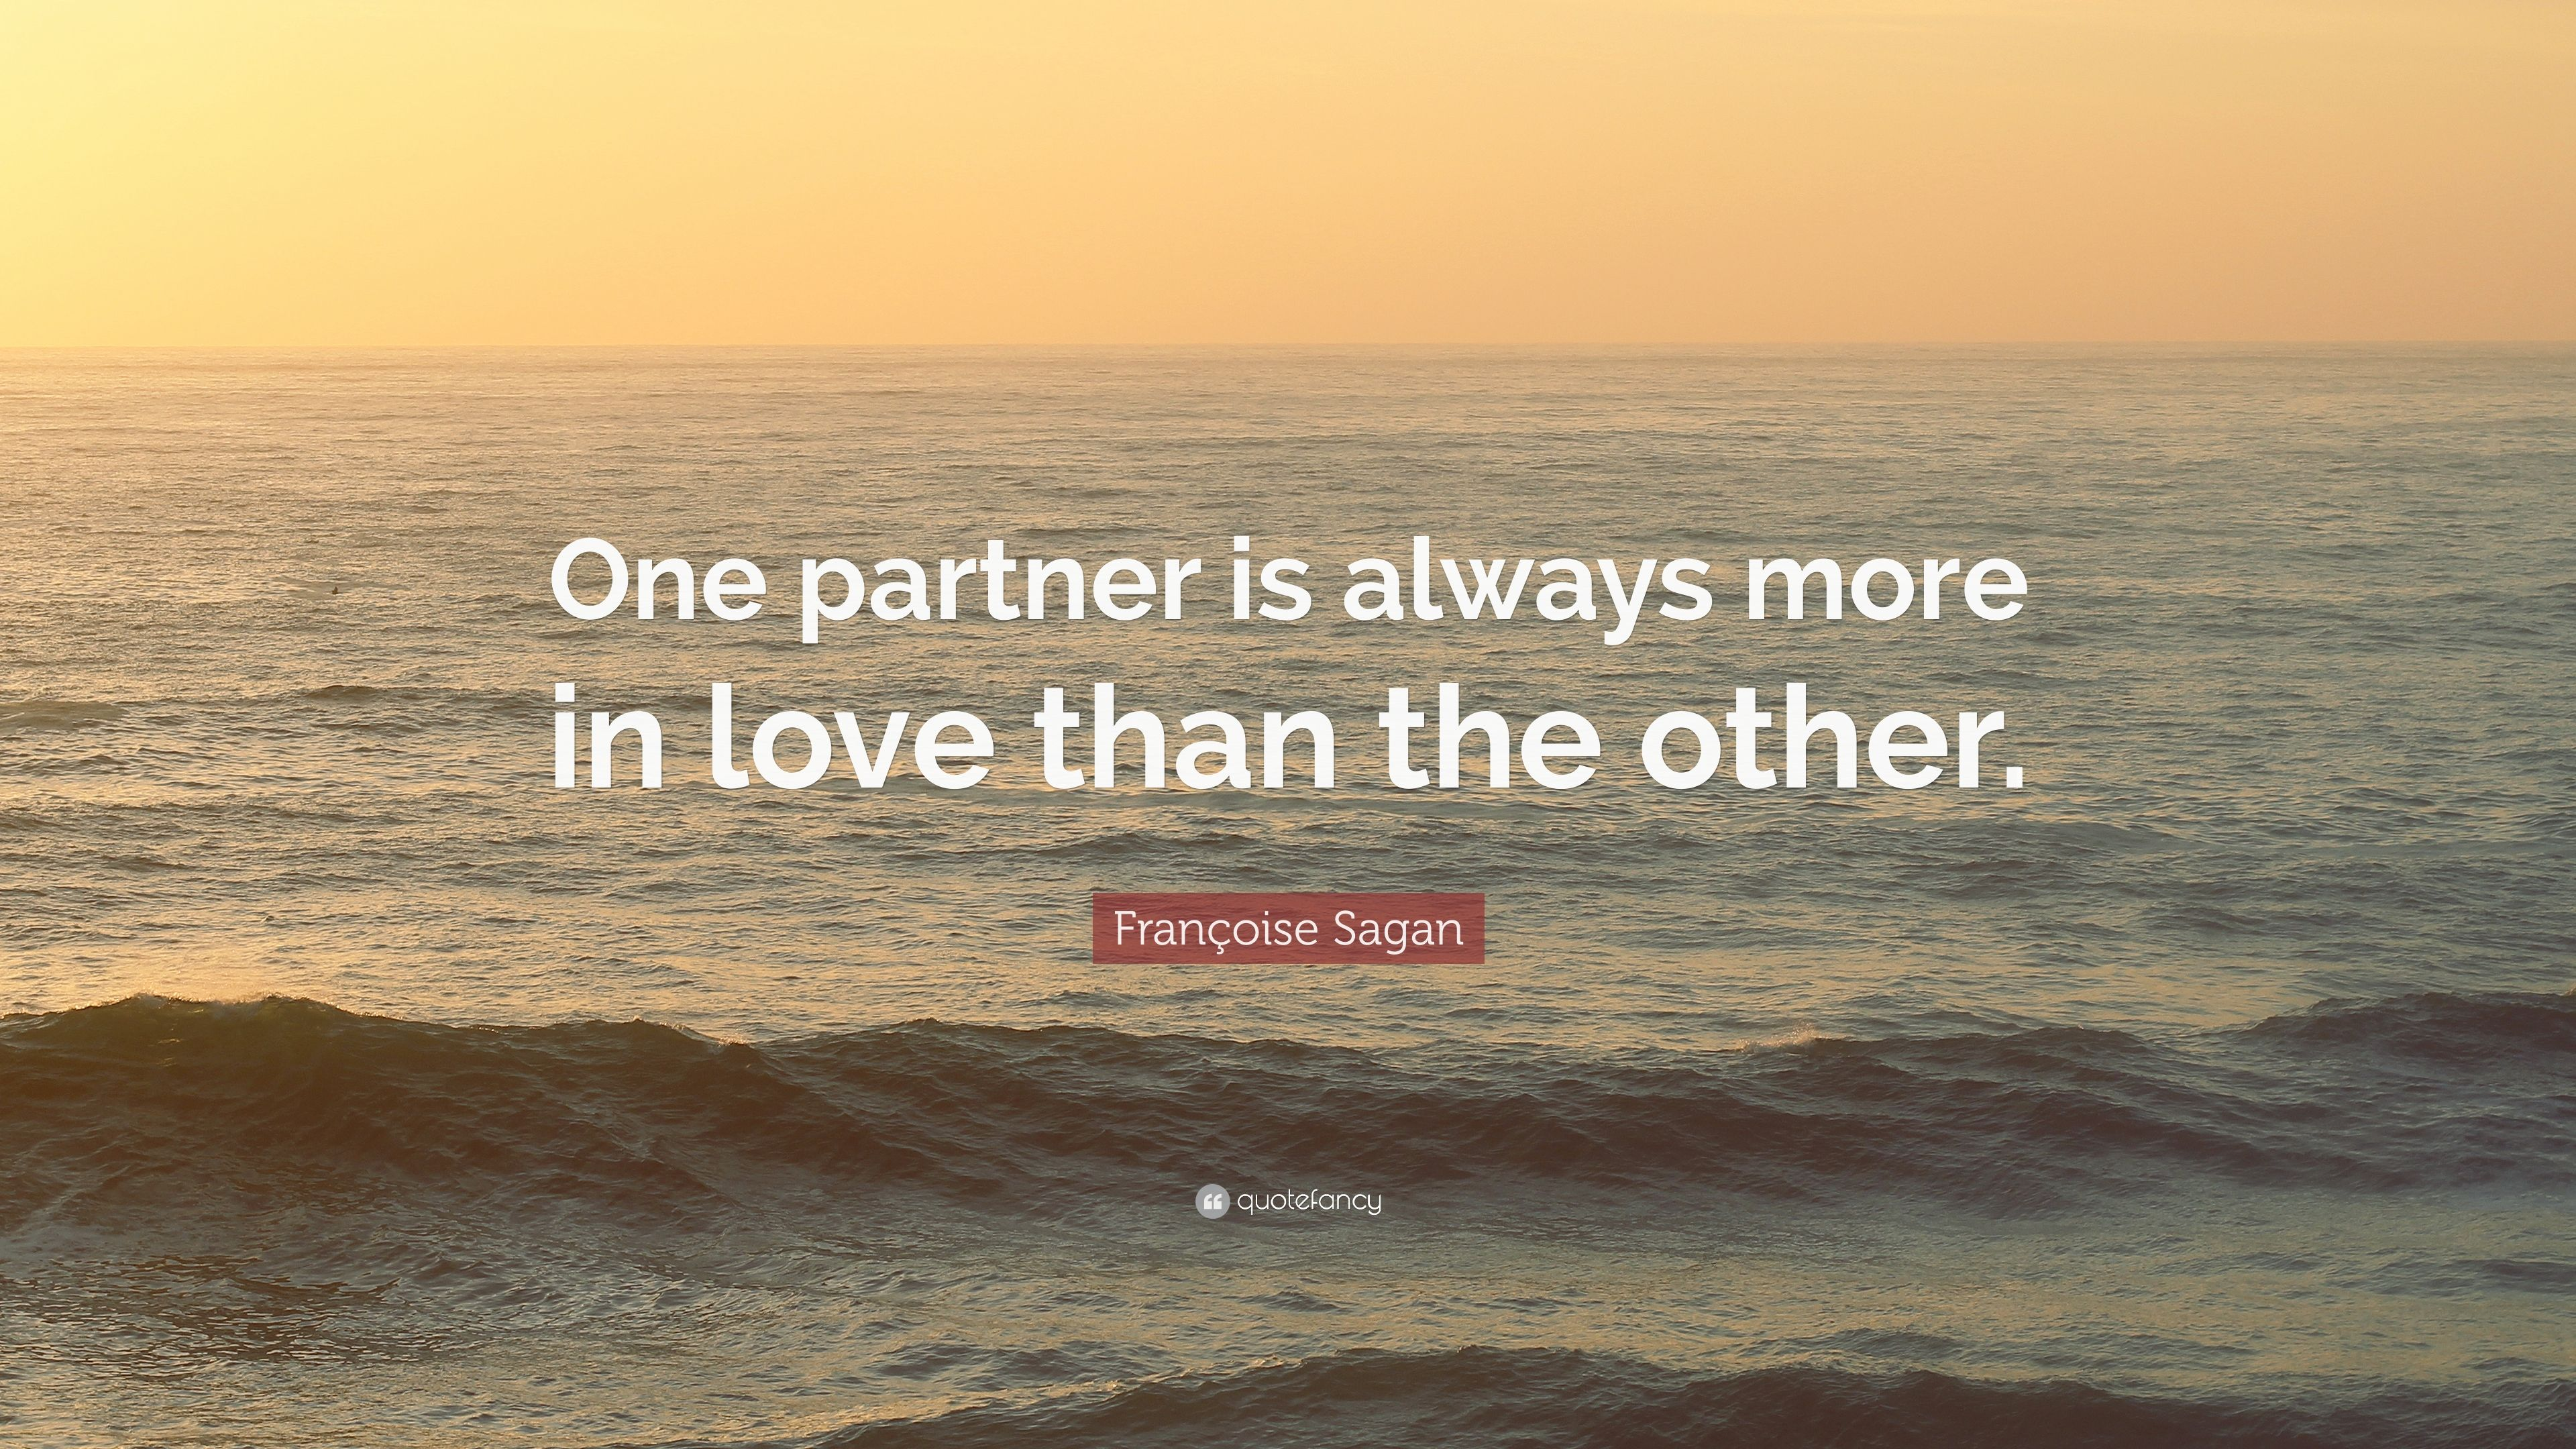 When one partner loves more than the other